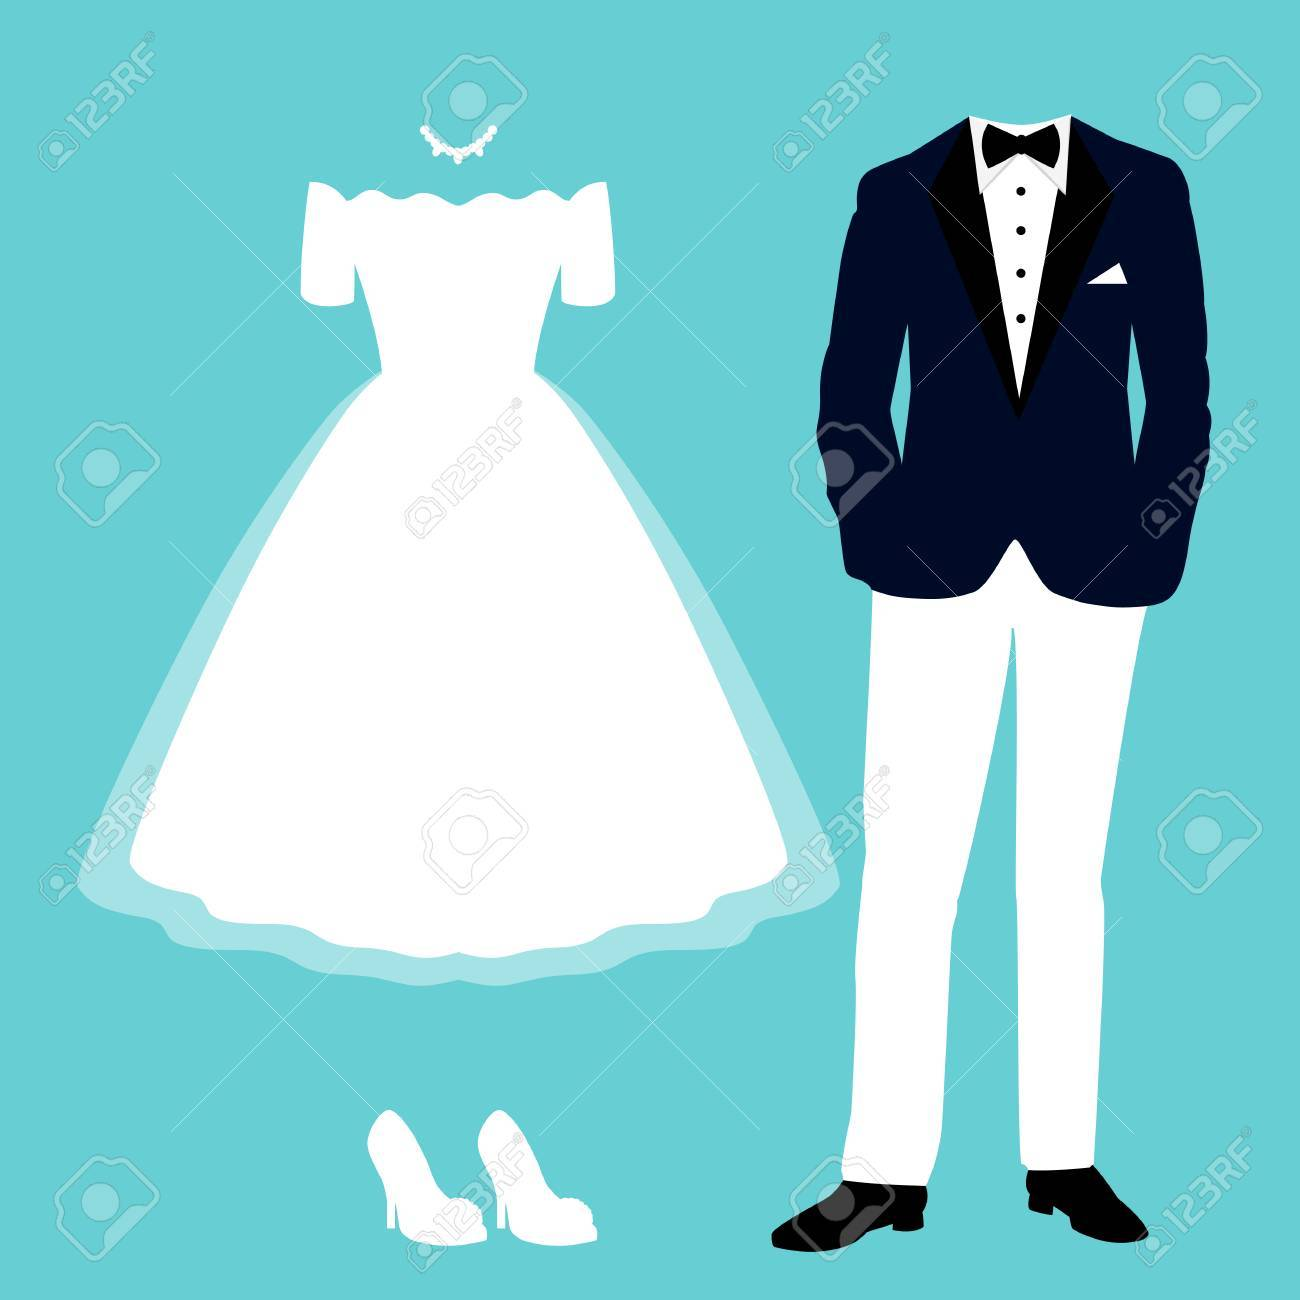 Wedding Card With The Clothes Of The Bride And Groom. Clothing ...